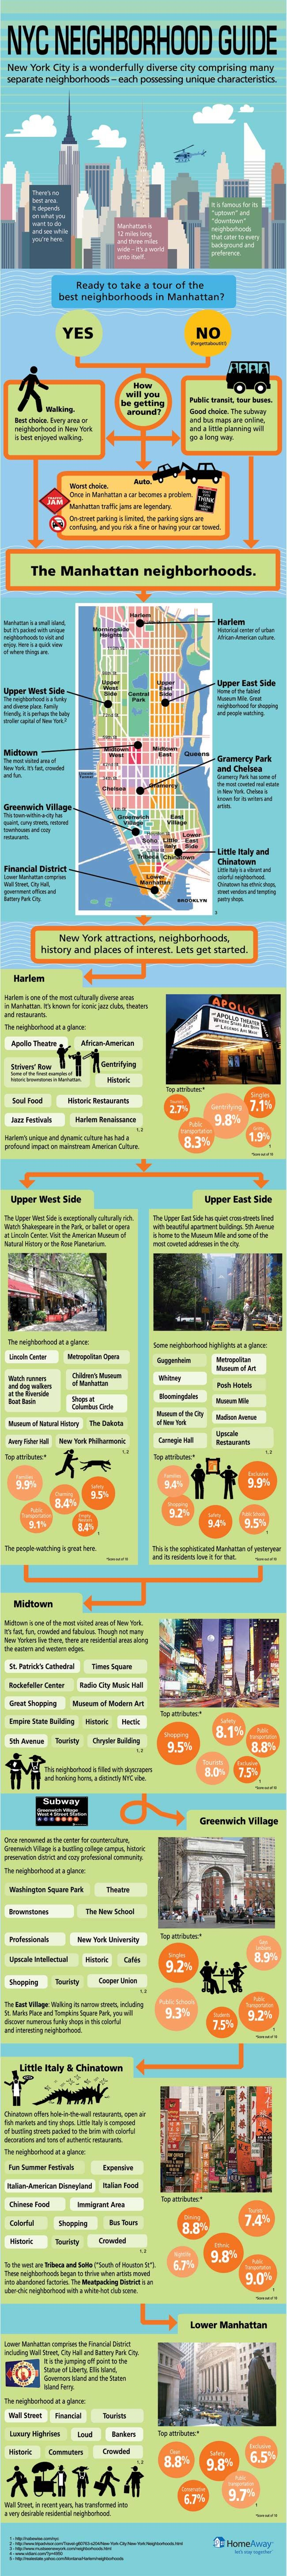 nyc neighborhood guide infographic